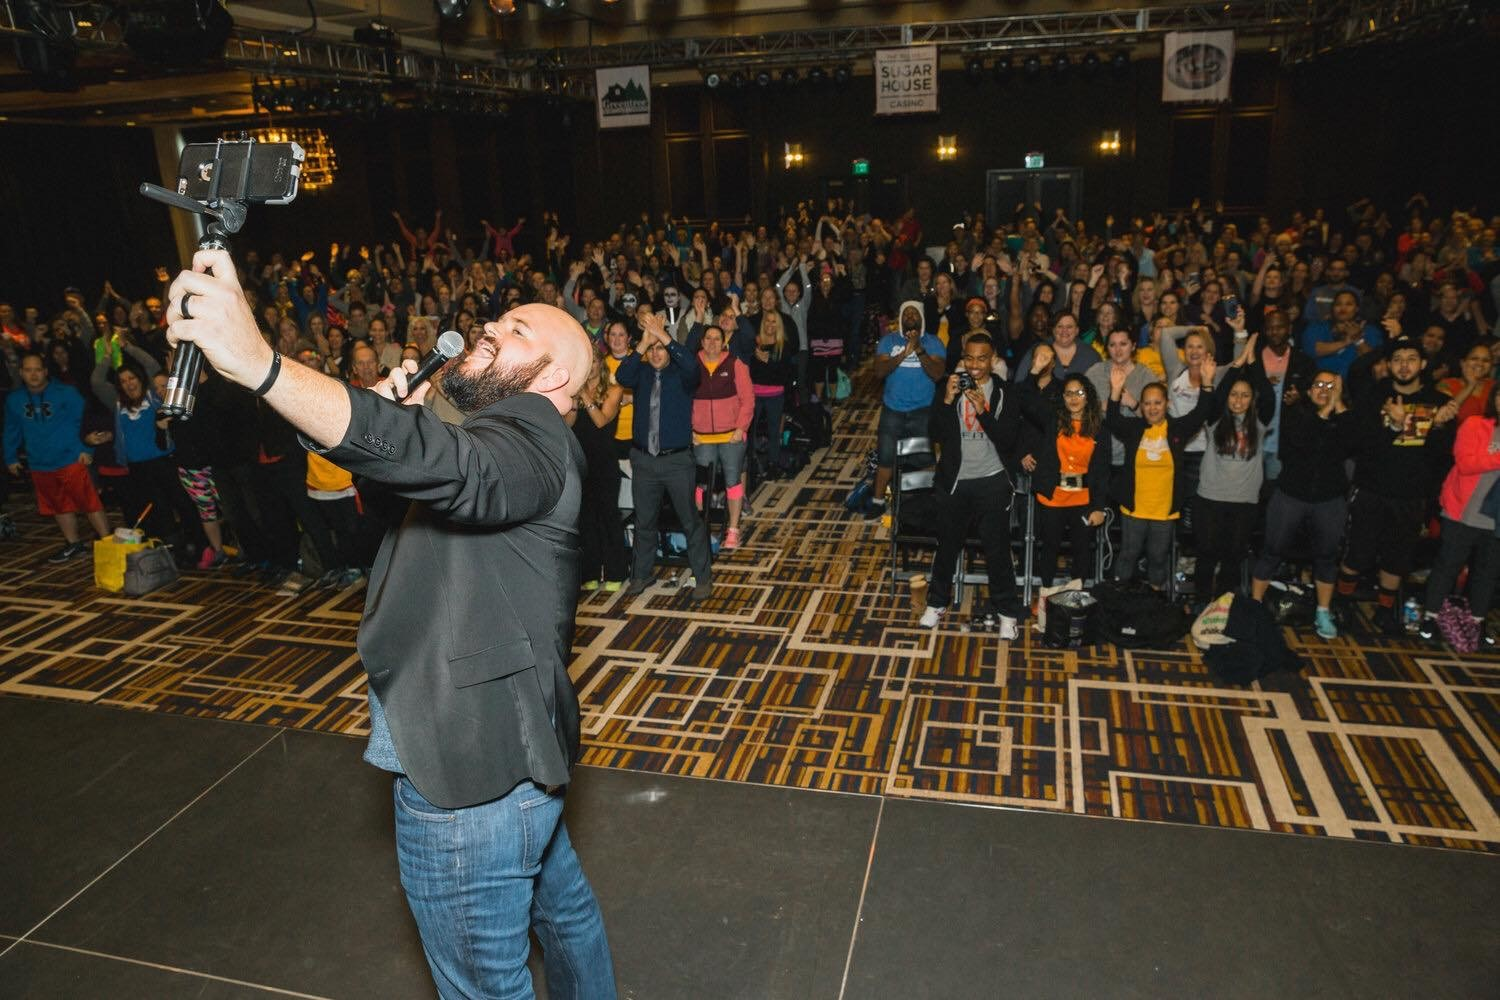 Dave McClain stands onstage at a Beachbody event in Philadelphia.